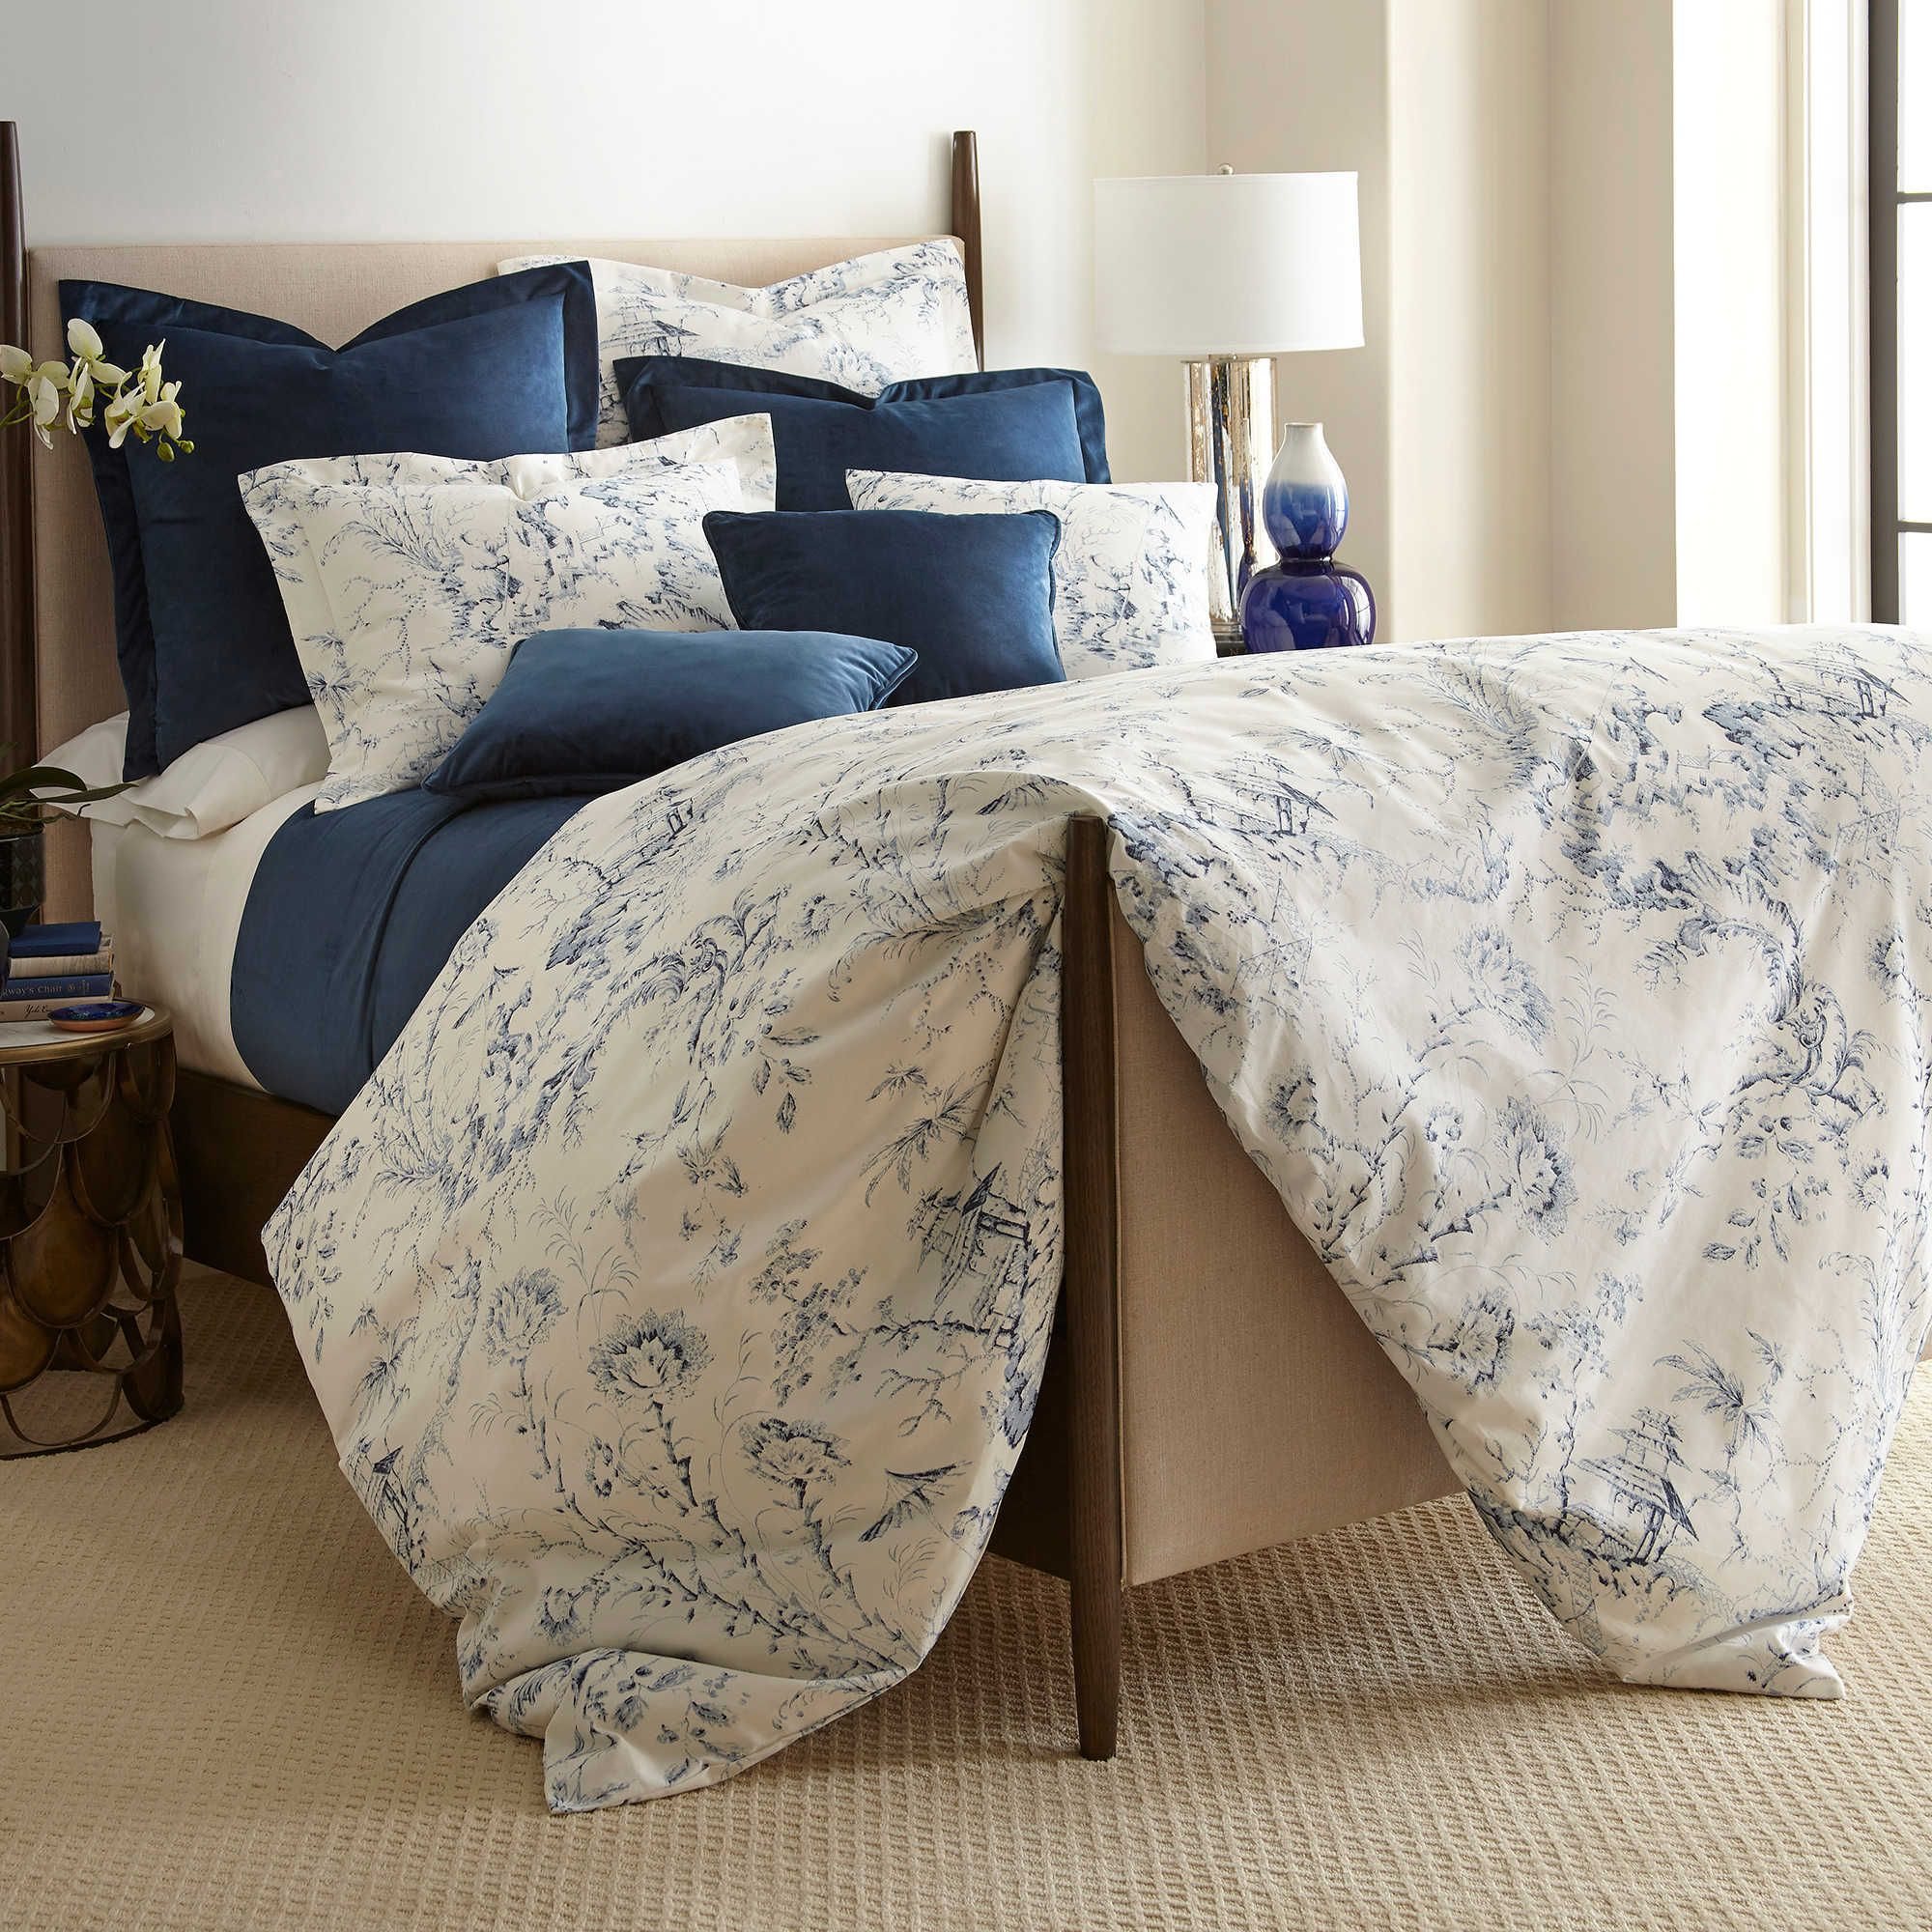 white sets covers cal comforter duvet designer plaid image sara green bedspread light of pretty yhst full duvets royal california turquoise set lime and queen teal for collection size blue mens by hotel bed bedding doona with quilt flannel grey king beautiful cover